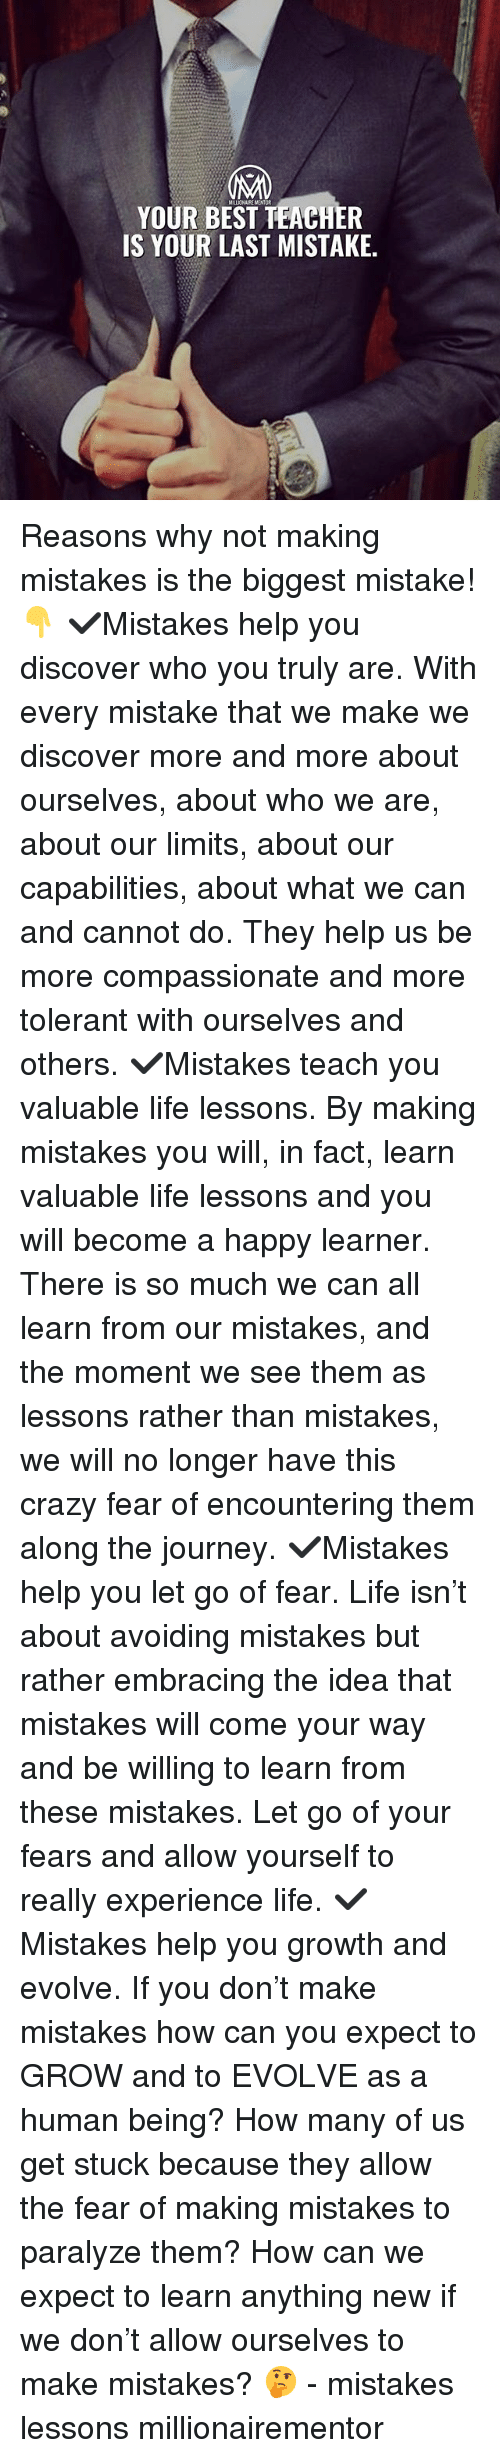 Crazy, Journey, and Life: MILLONAIRE MENTOR  YOUR BEST TEACHER  IS YOUR LAST MISTAKE. Reasons why not making mistakes is the biggest mistake!👇 ✔️Mistakes help you discover who you truly are. With every mistake that we make we discover more and more about ourselves, about who we are, about our limits, about our capabilities, about what we can and cannot do. They help us be more compassionate and more tolerant with ourselves and others. ✔️Mistakes teach you valuable life lessons. By making mistakes you will, in fact, learn valuable life lessons and you will become a happy learner. There is so much we can all learn from our mistakes, and the moment we see them as lessons rather than mistakes, we will no longer have this crazy fear of encountering them along the journey. ✔️Mistakes help you let go of fear. Life isn't about avoiding mistakes but rather embracing the idea that mistakes will come your way and be willing to learn from these mistakes. Let go of your fears and allow yourself to really experience life. ✔️Mistakes help you growth and evolve. If you don't make mistakes how can you expect to GROW and to EVOLVE as a human being? How many of us get stuck because they allow the fear of making mistakes to paralyze them? How can we expect to learn anything new if we don't allow ourselves to make mistakes? 🤔 - mistakes lessons millionairementor